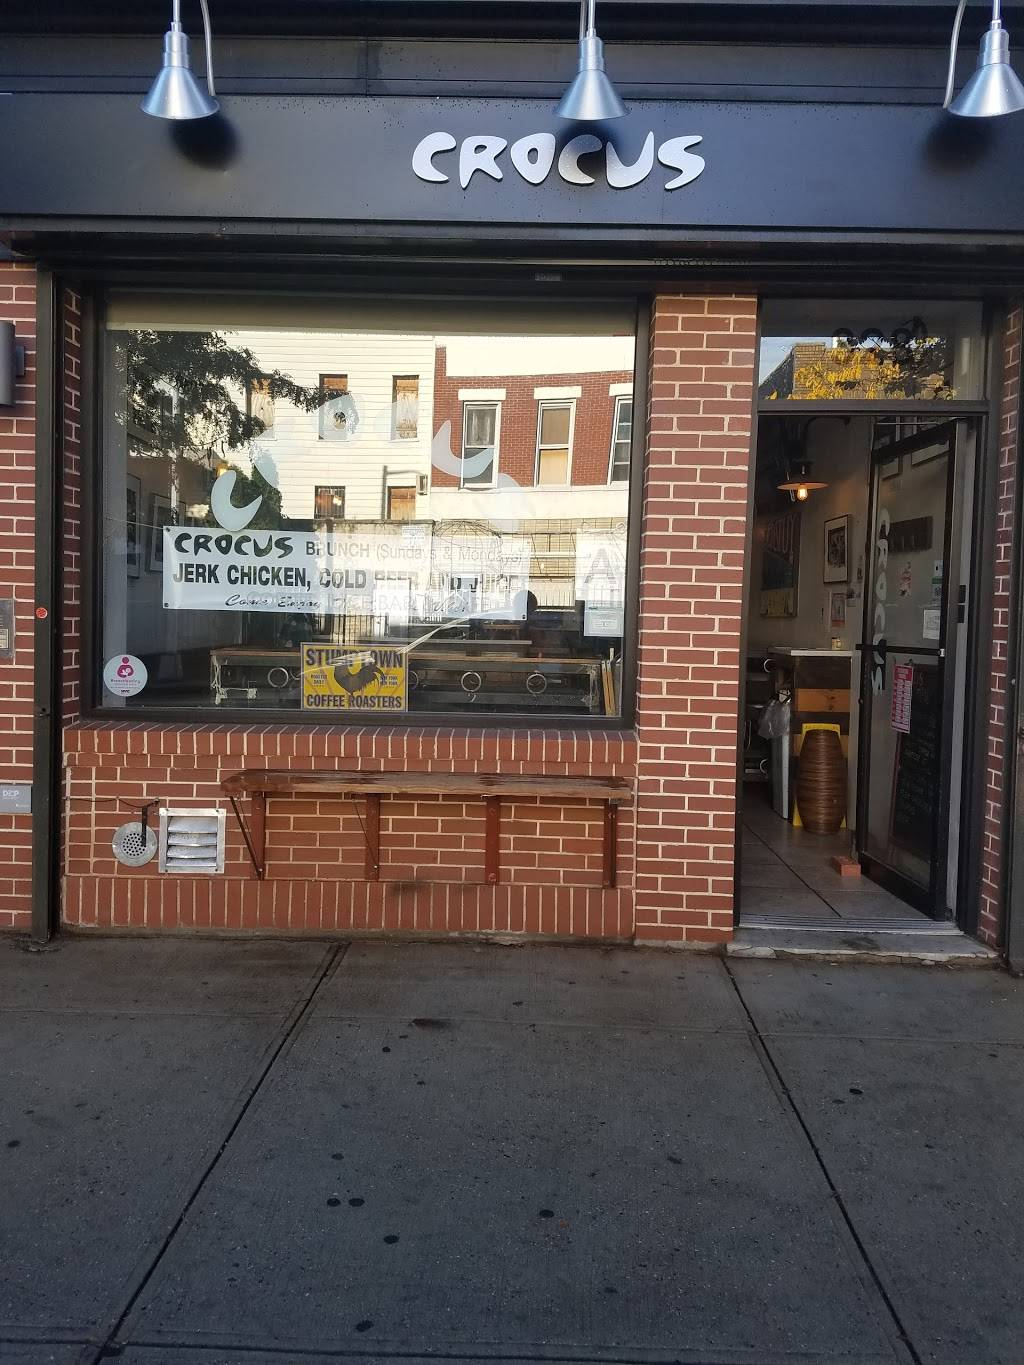 Crocus Cafe Juice Bar & Grill | cafe | 328 Tompkins Ave, Brooklyn, NY 11216, USA | 7182301639 OR +1 718-230-1639